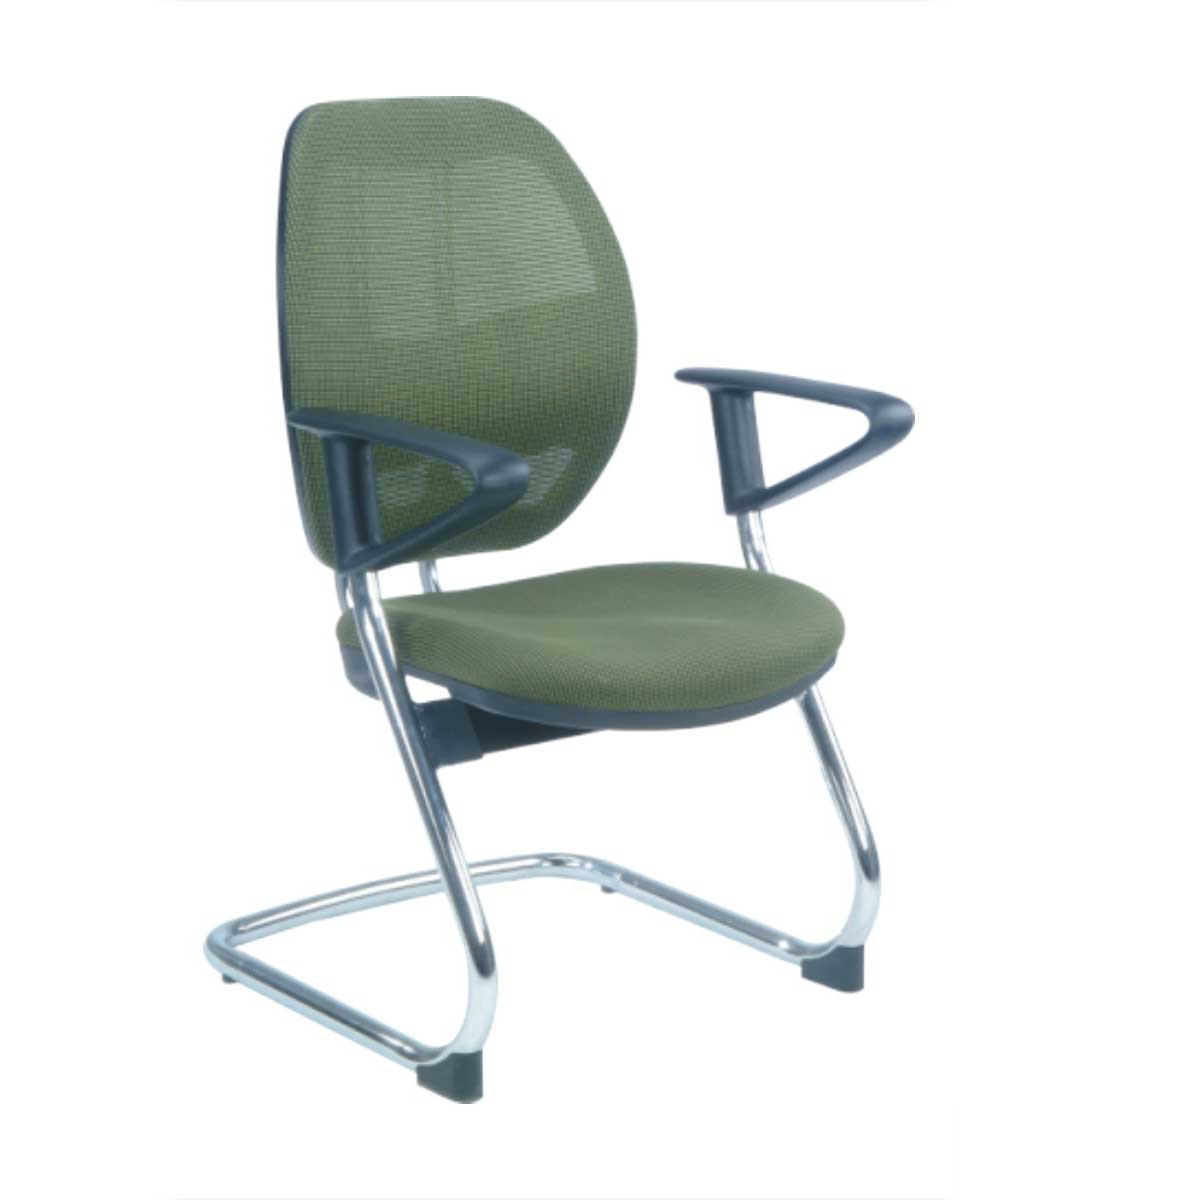 cheap metal office visitor chairs in green